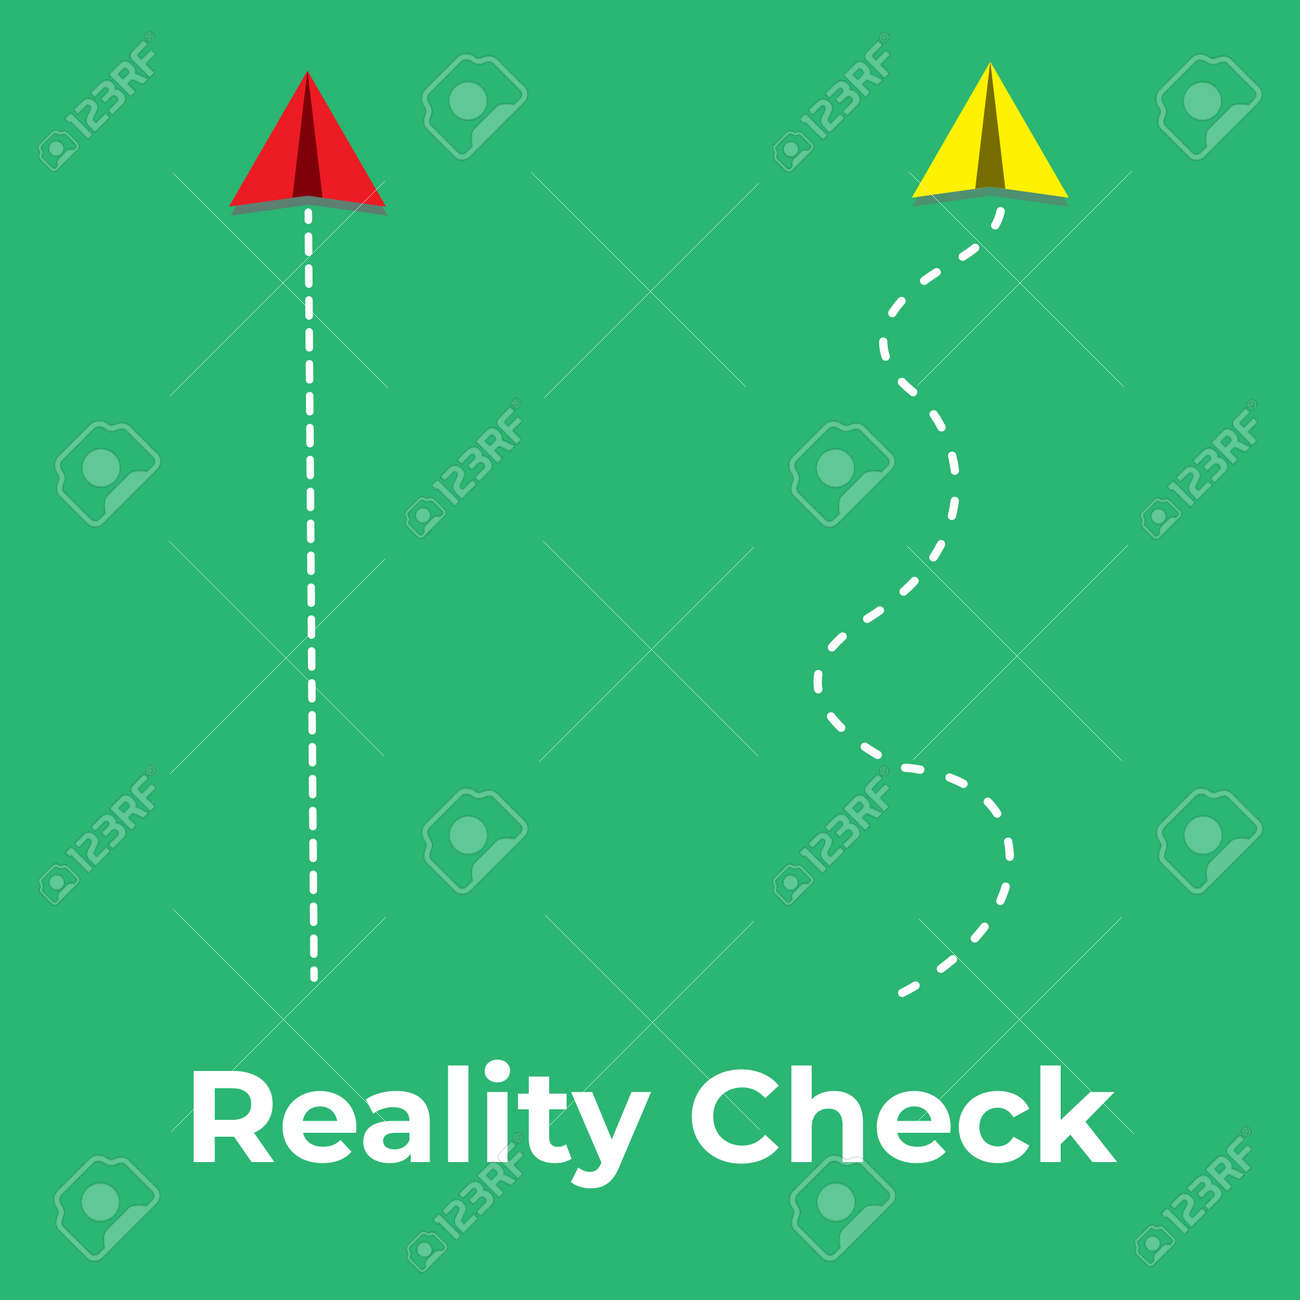 A vector of paper plane flying path with the word reality check. - 167056570